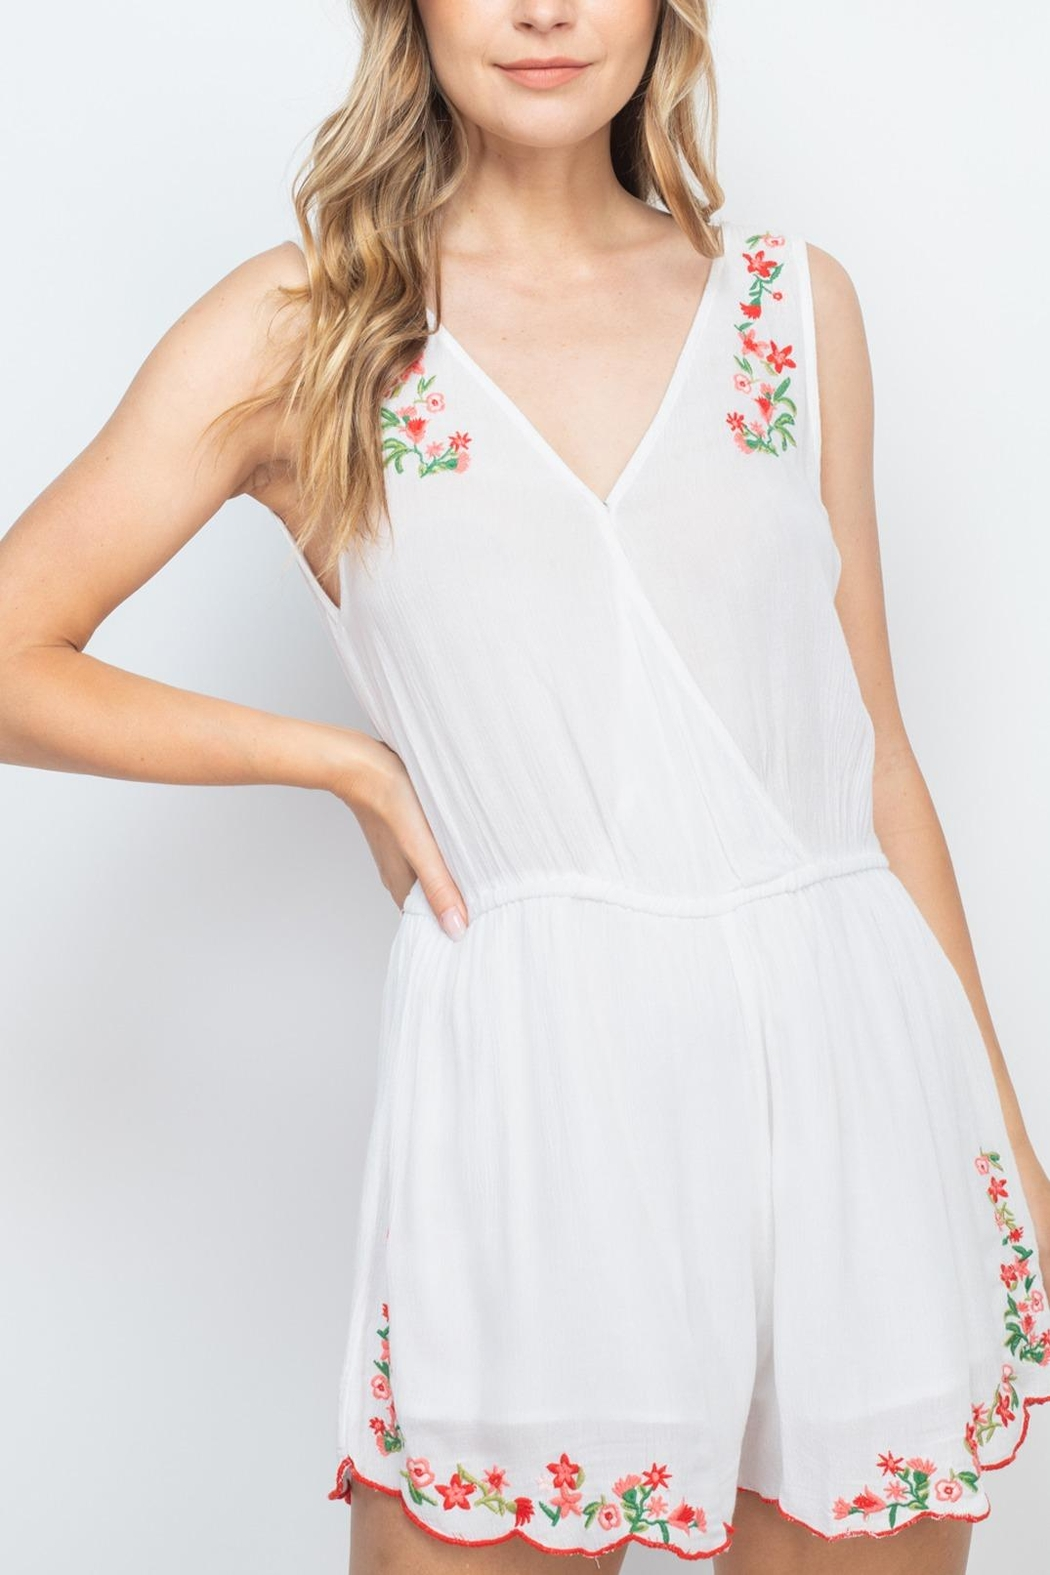 Riah Fashion White-With-Flowers-Embroidery-Romper - Main Image